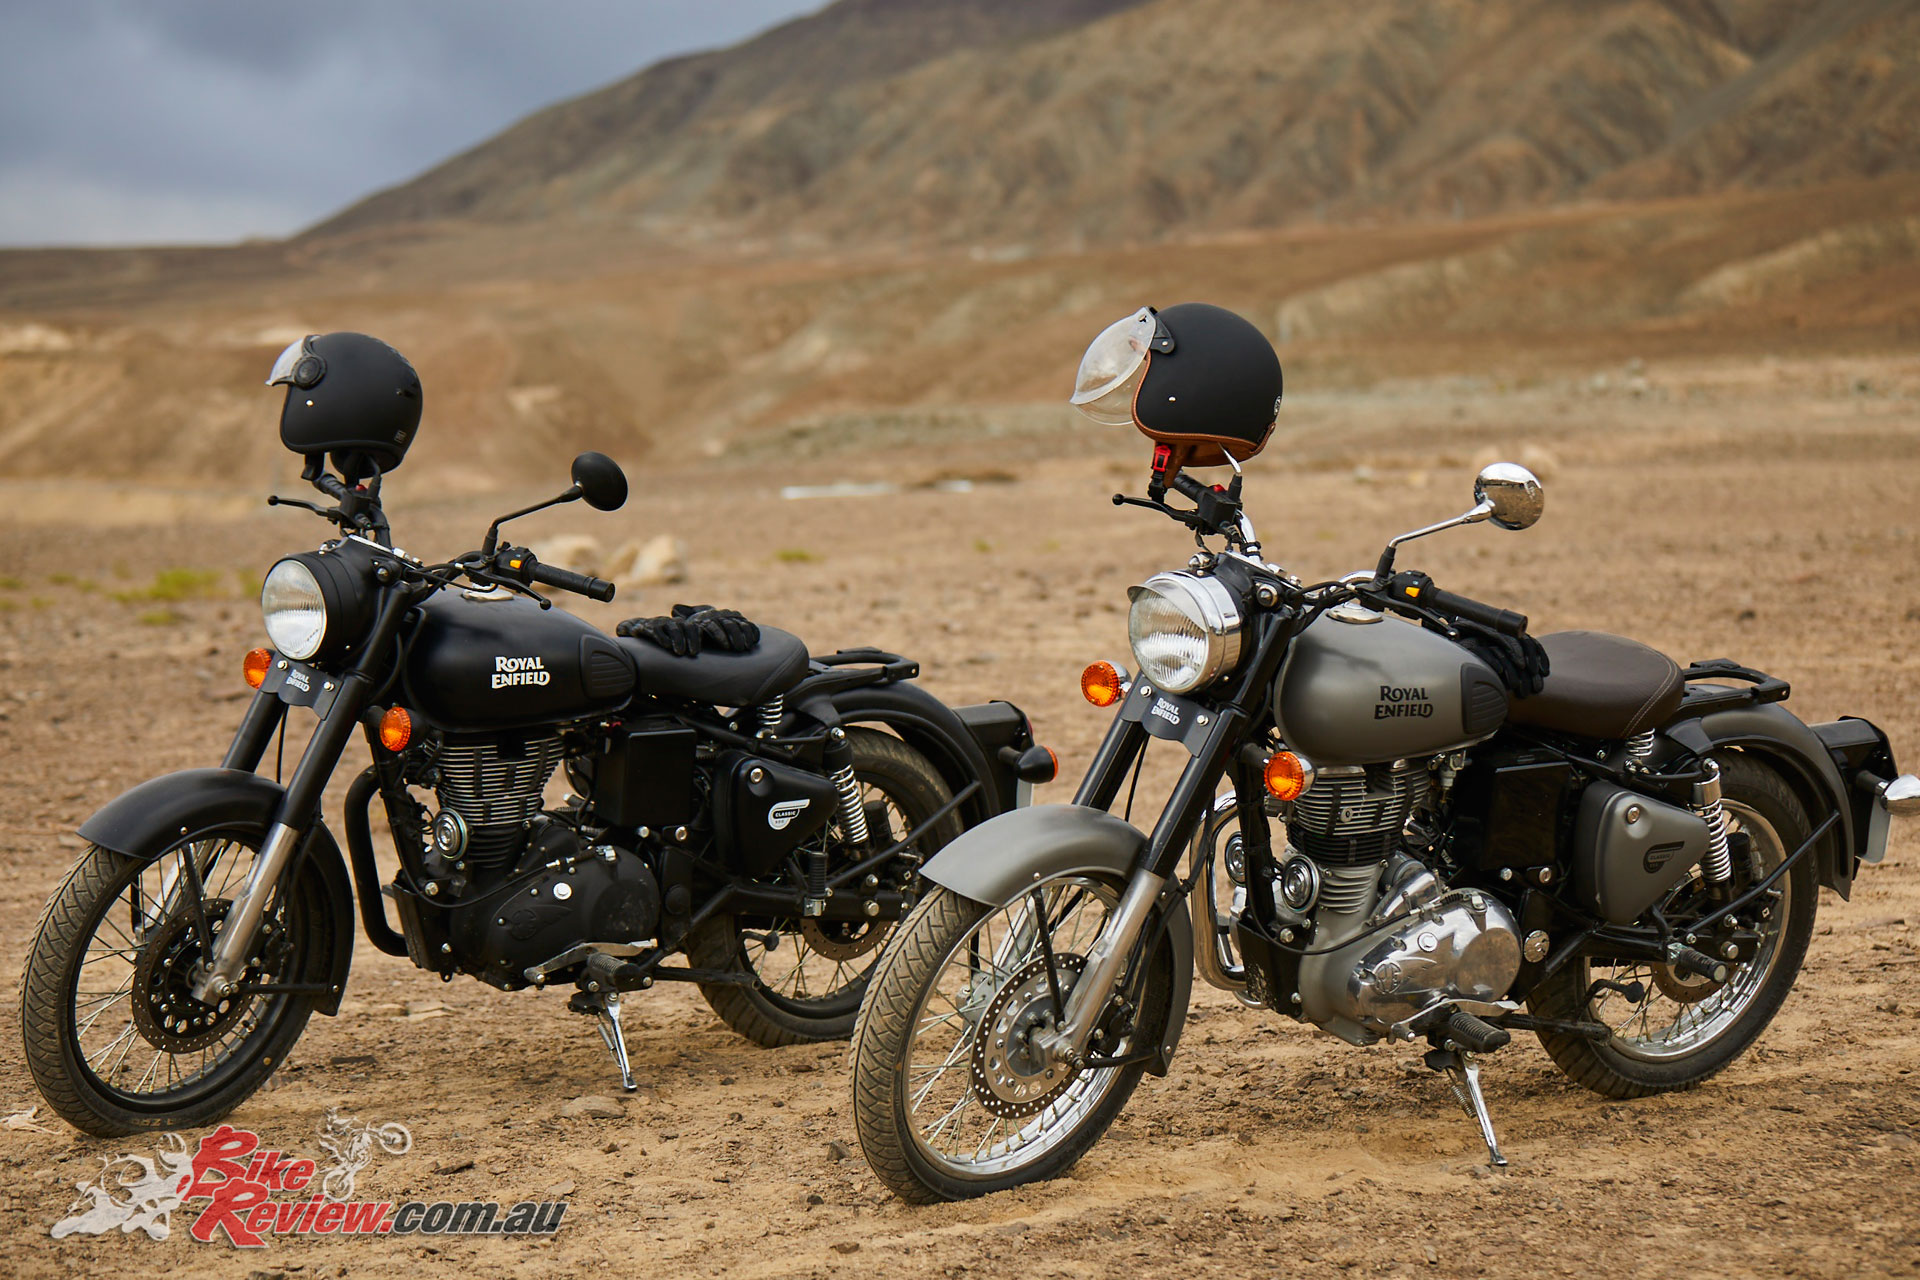 royal enfield classic 500 in stealth black and gunmetal grey bike review. Black Bedroom Furniture Sets. Home Design Ideas